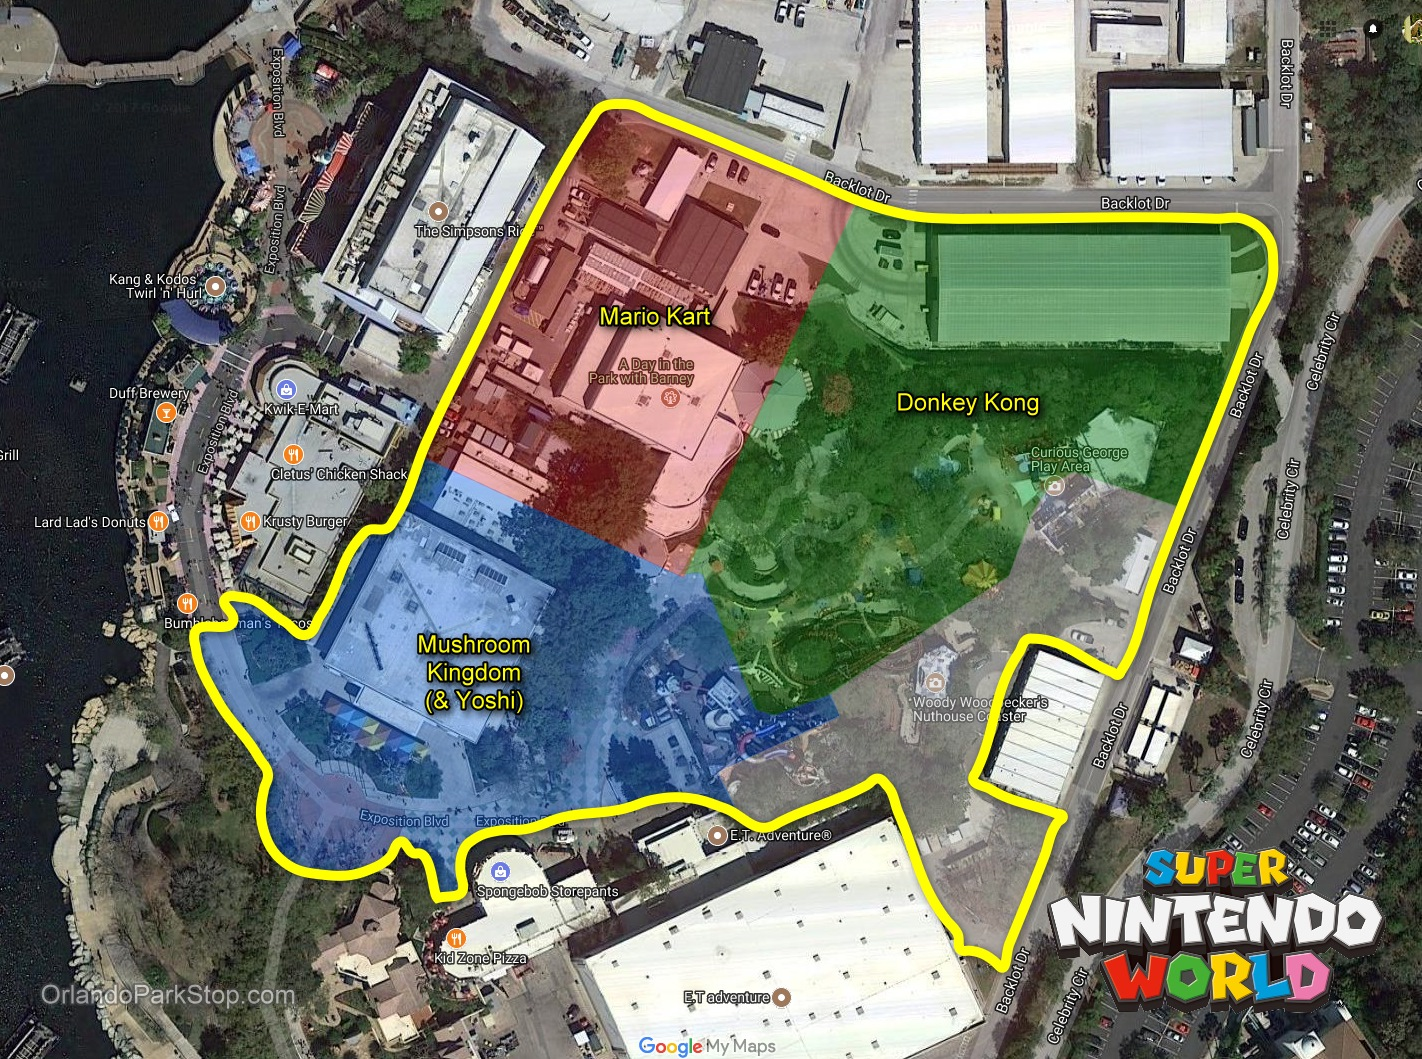 Permits Show Super Nintendo World Taking Over KidZone at Universal